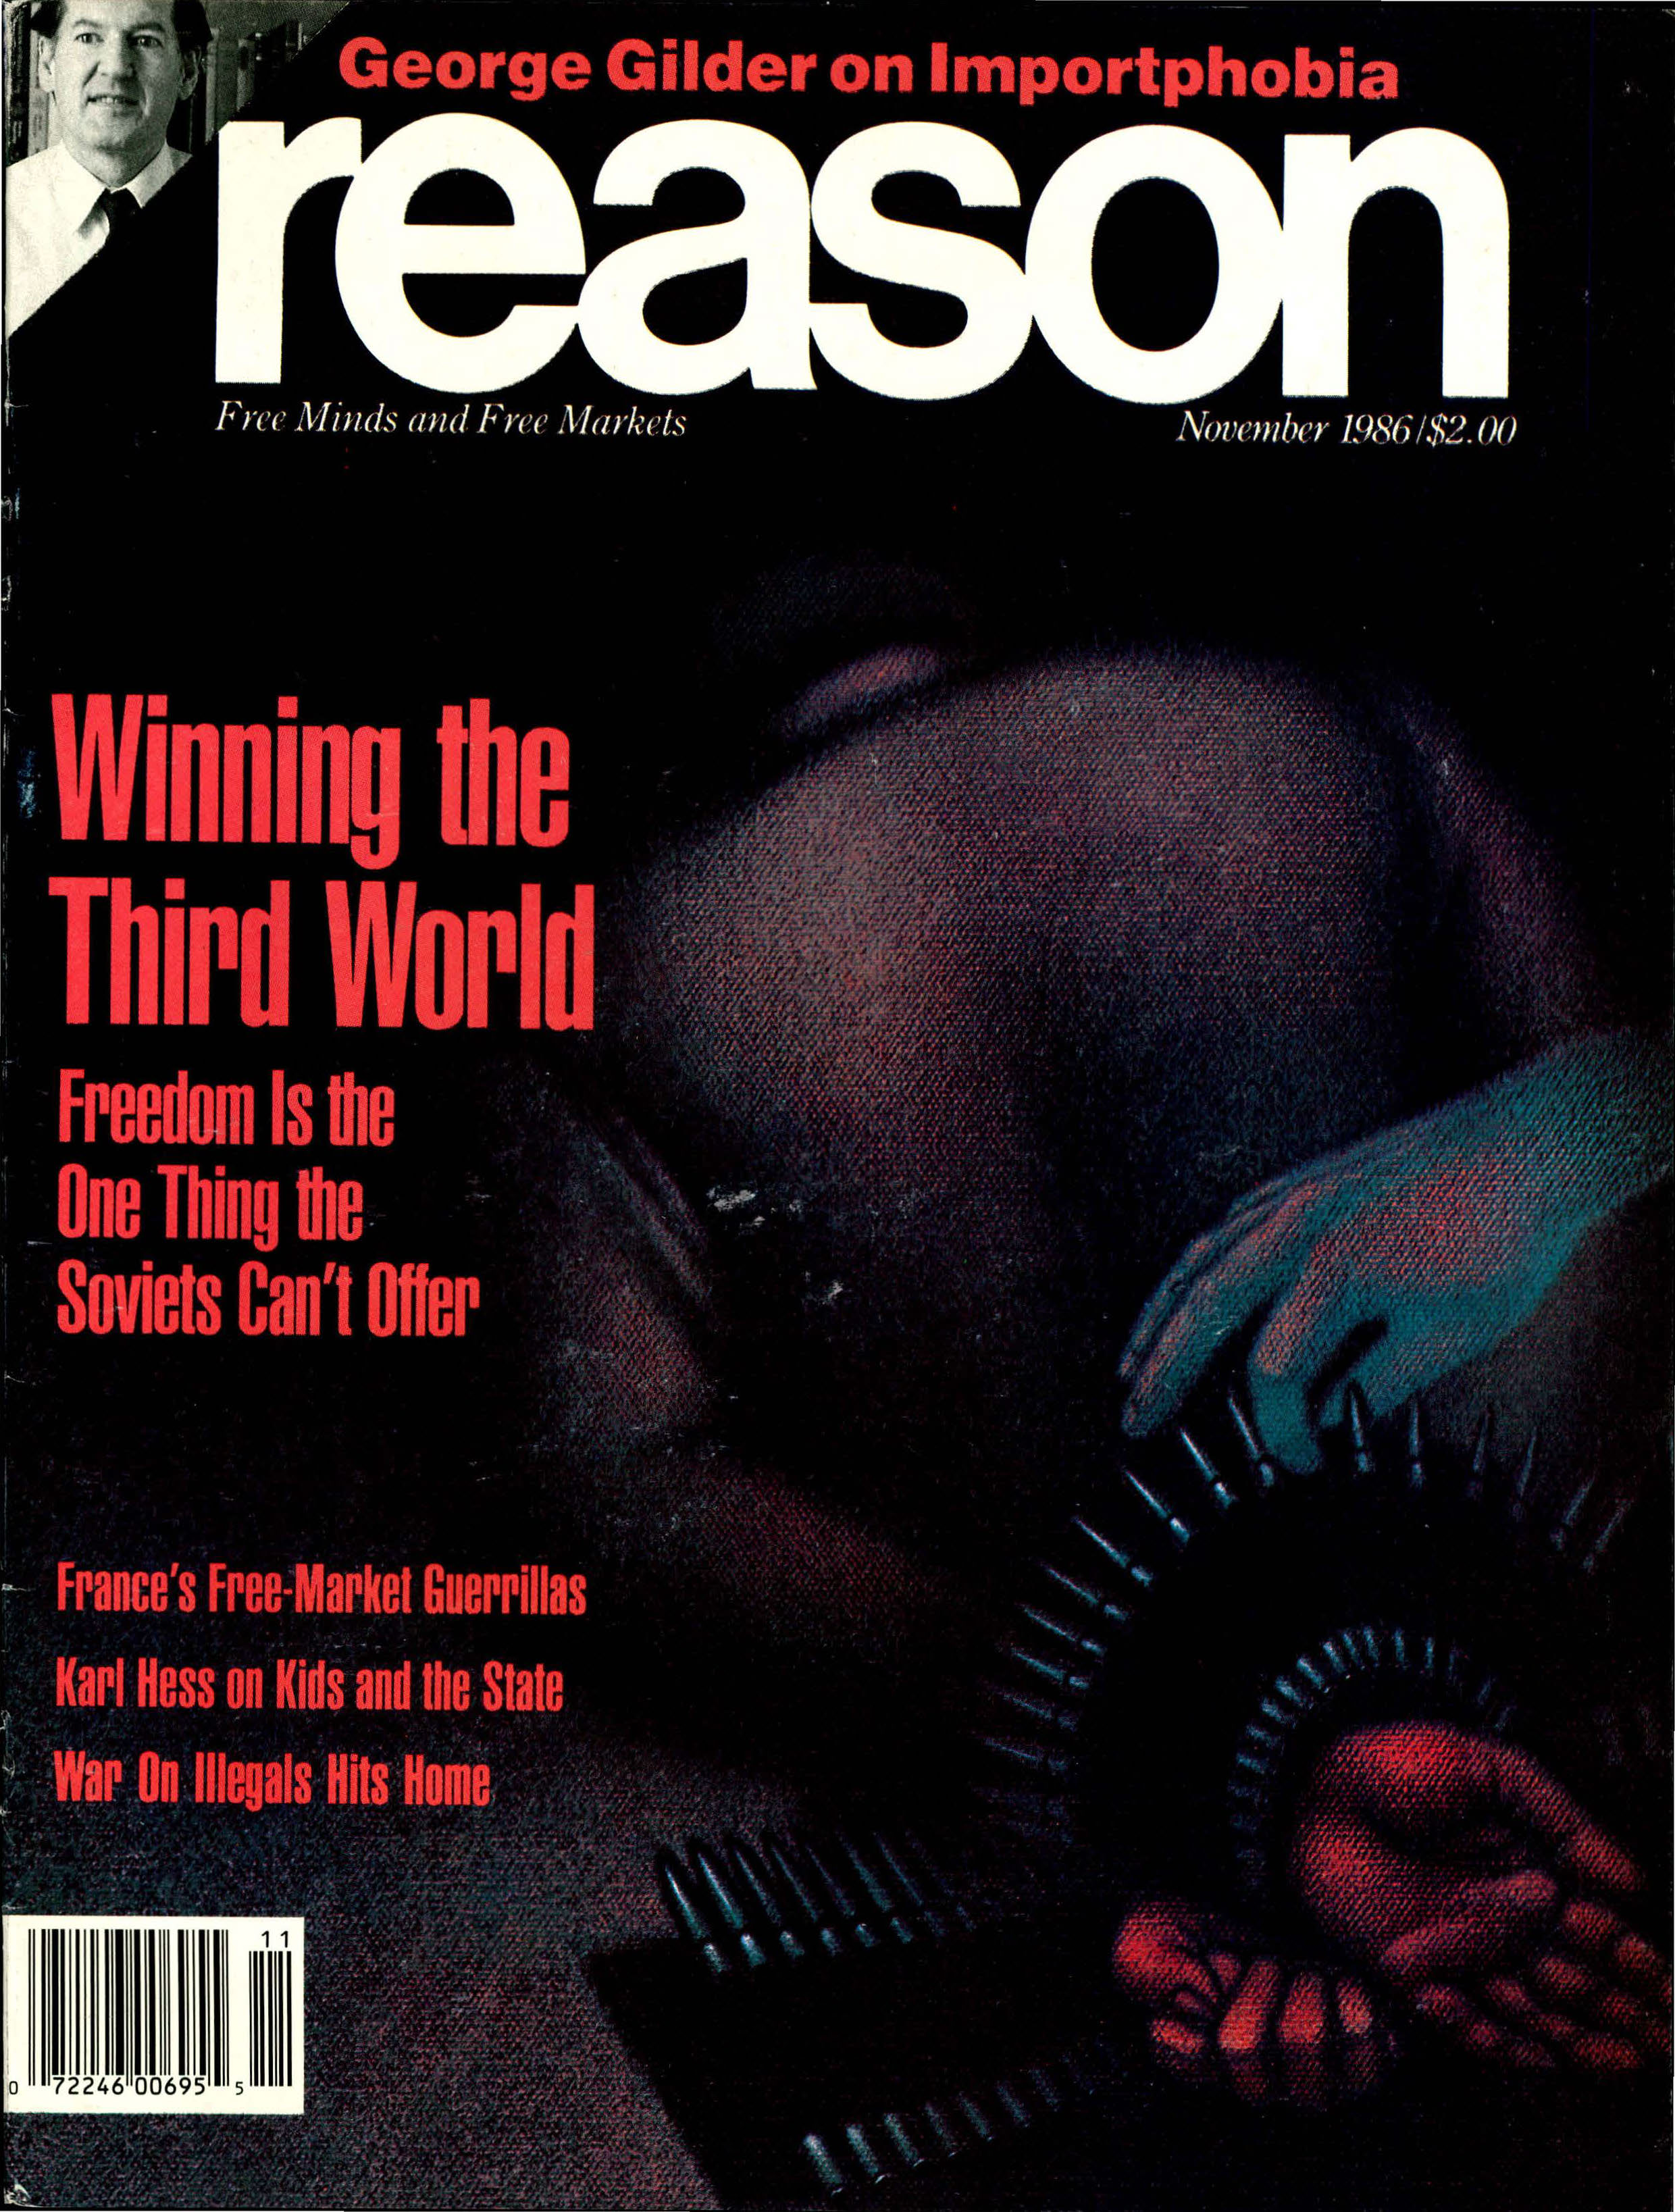 Reason Magazine, November 1986 cover image